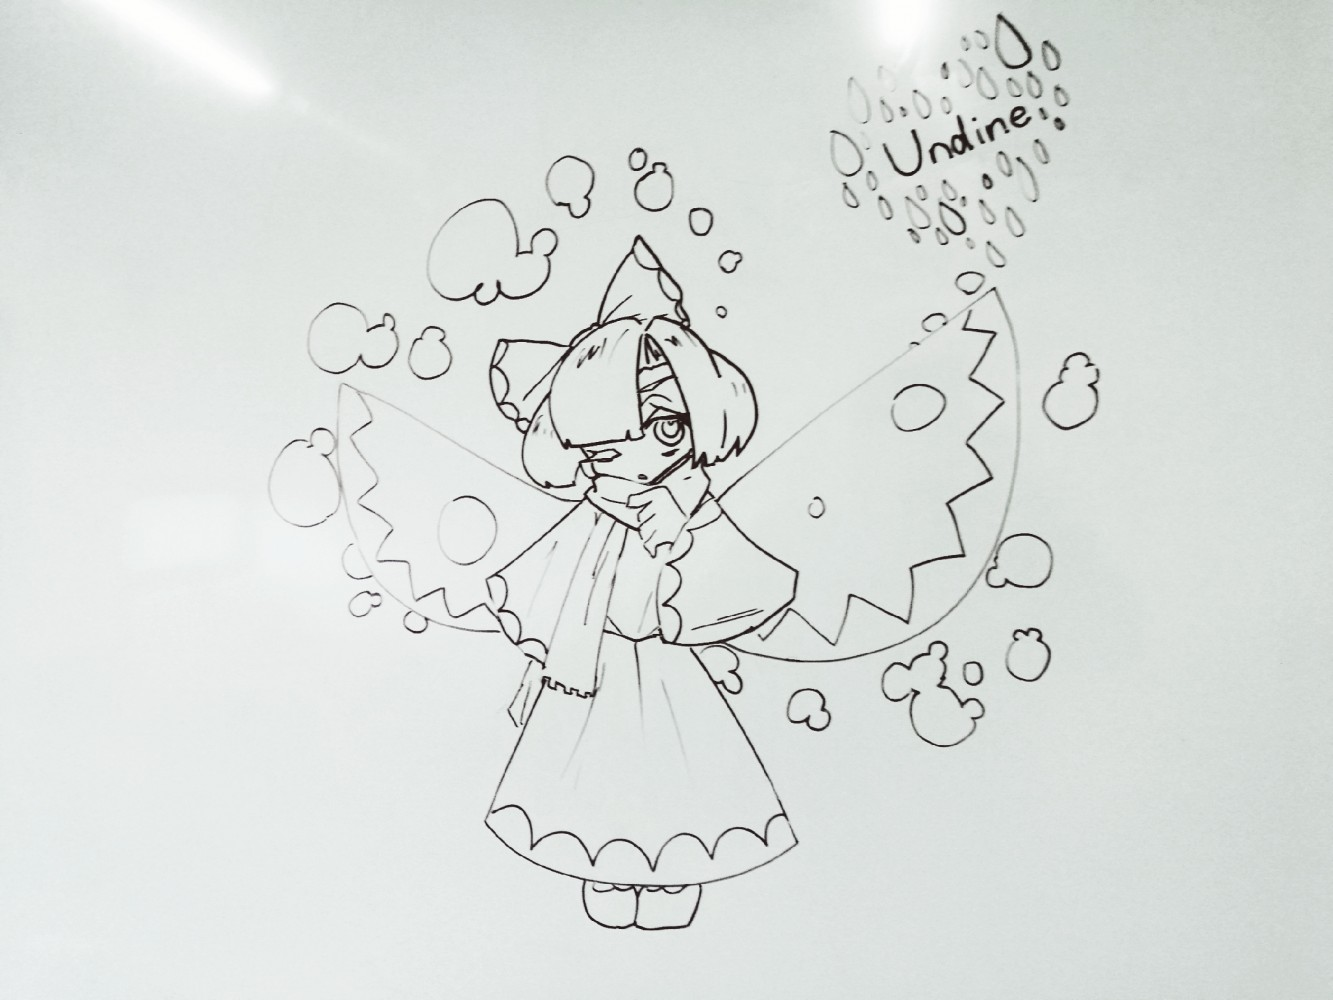 main-image-Drawing on the whiteboard uploaded by Snorlax